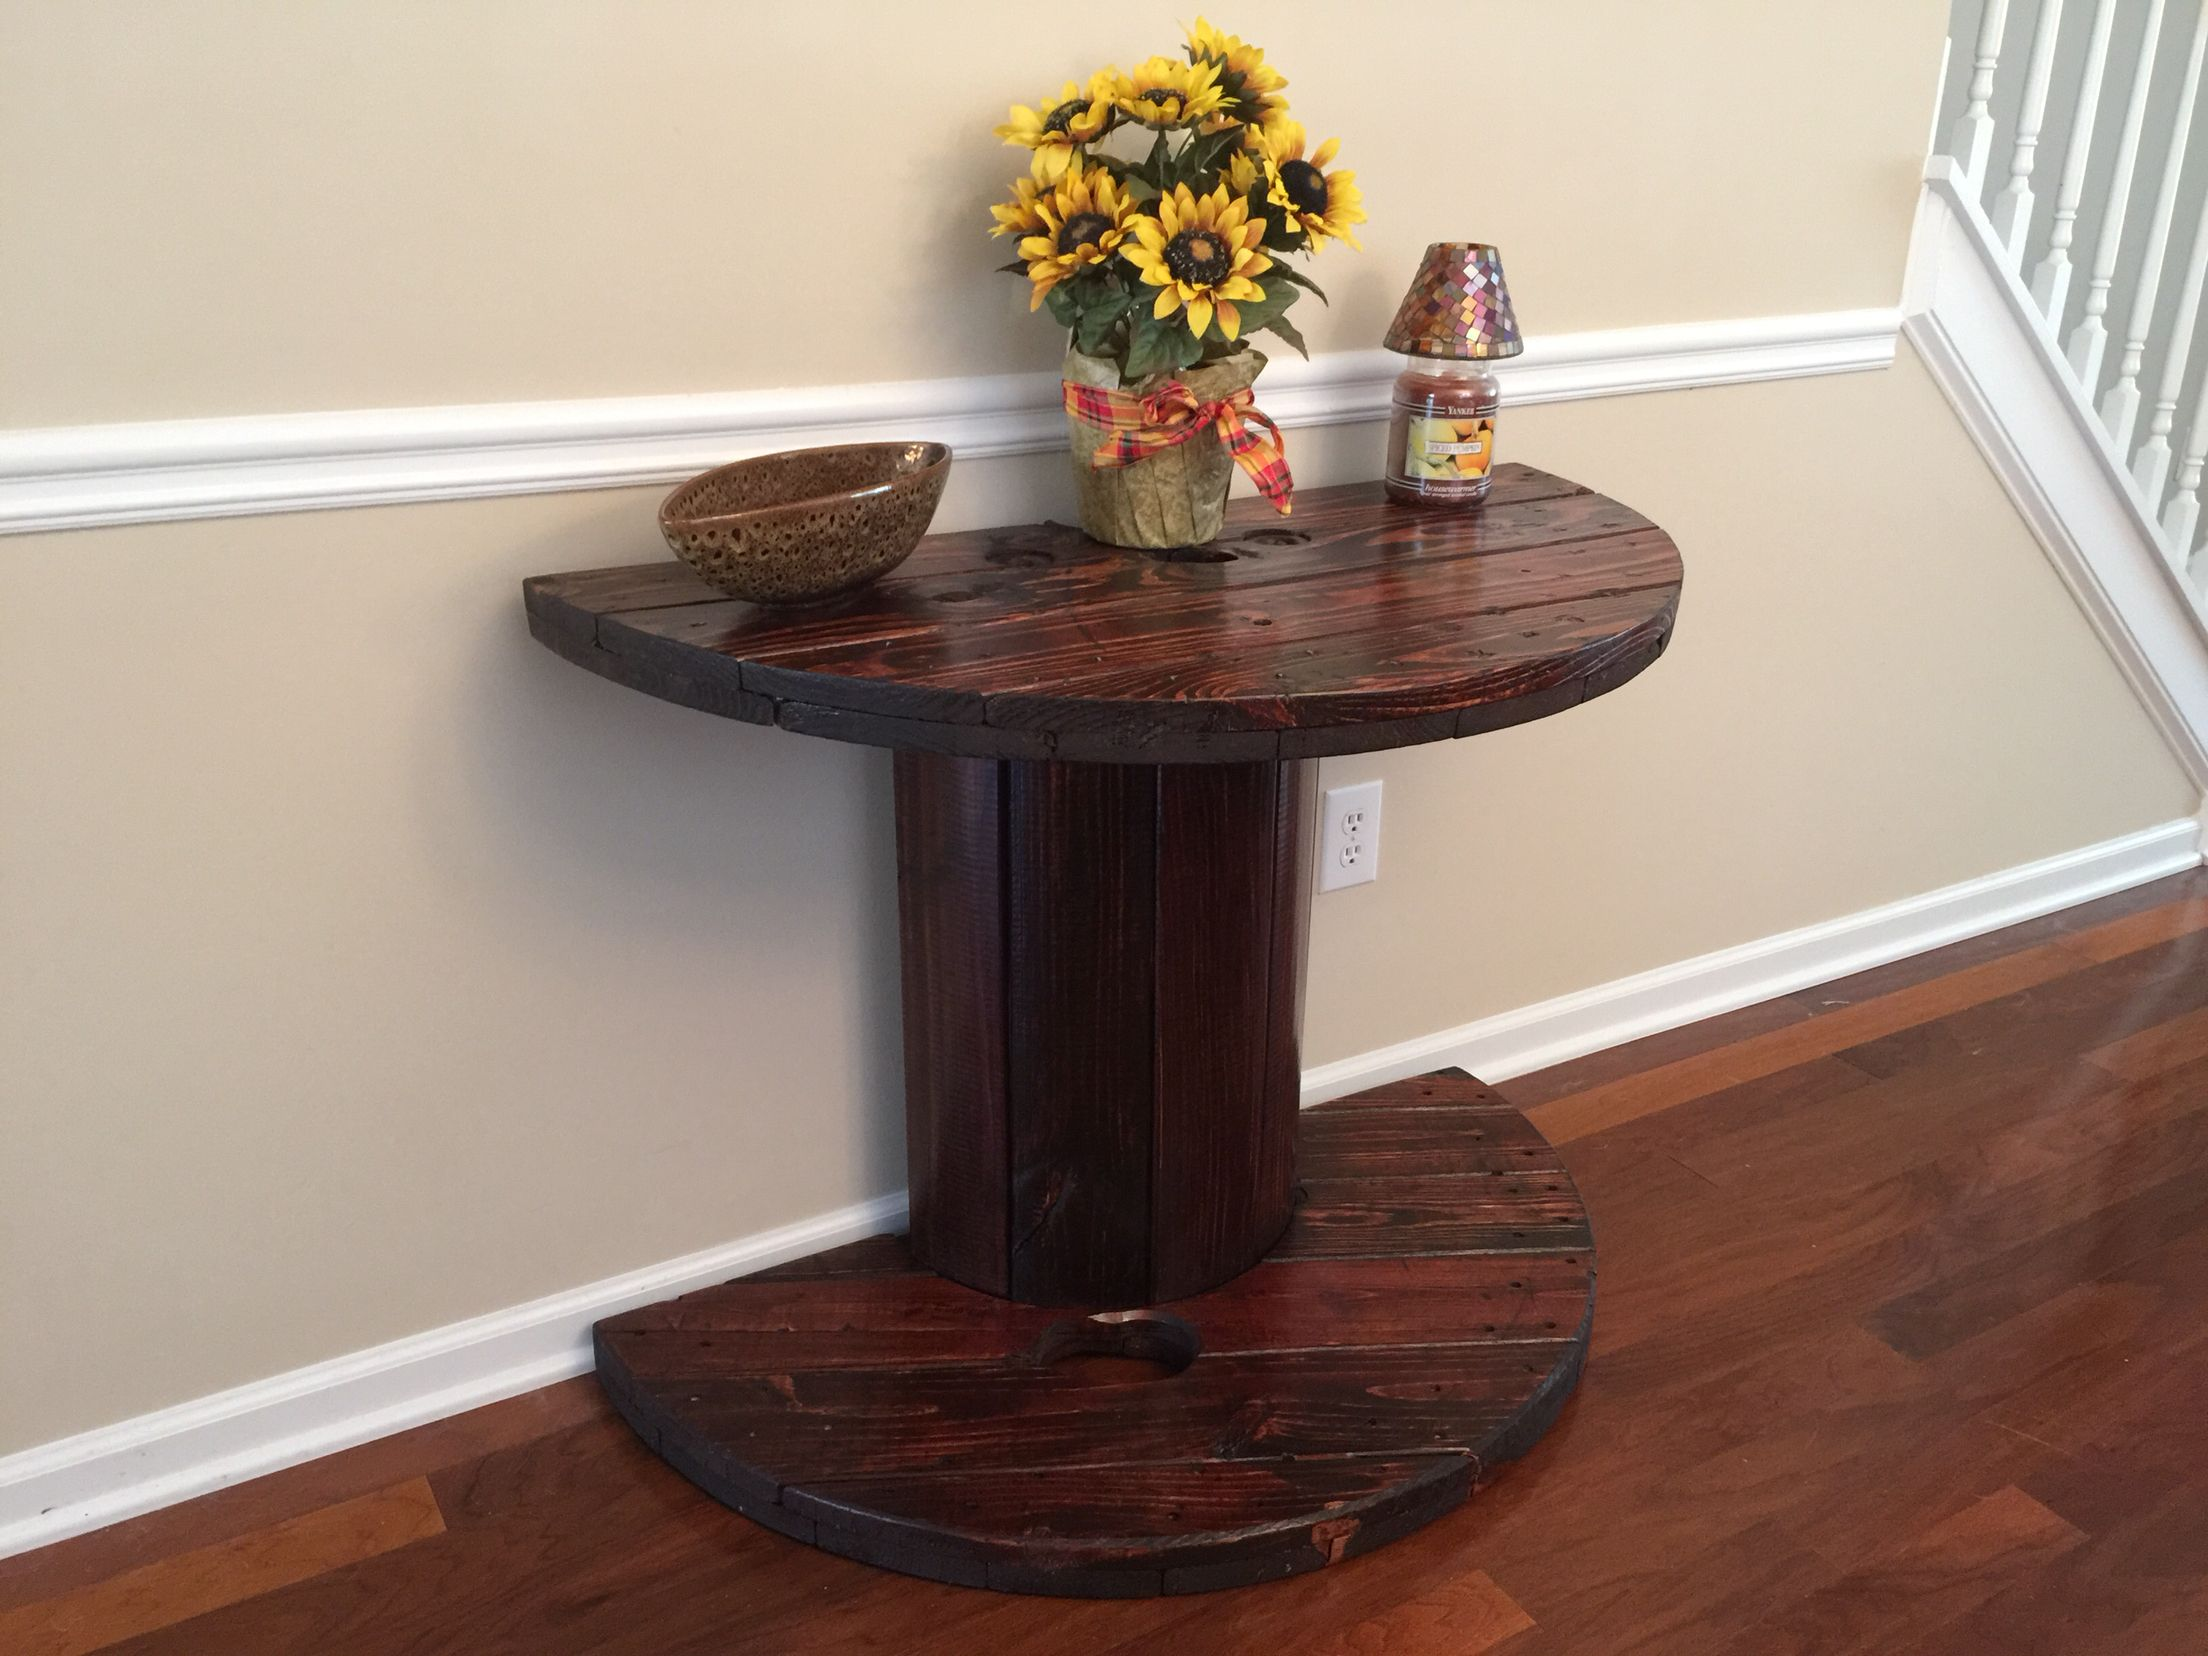 Large wooden spool cut in half sanded stained and for Large wooden spools used for tables